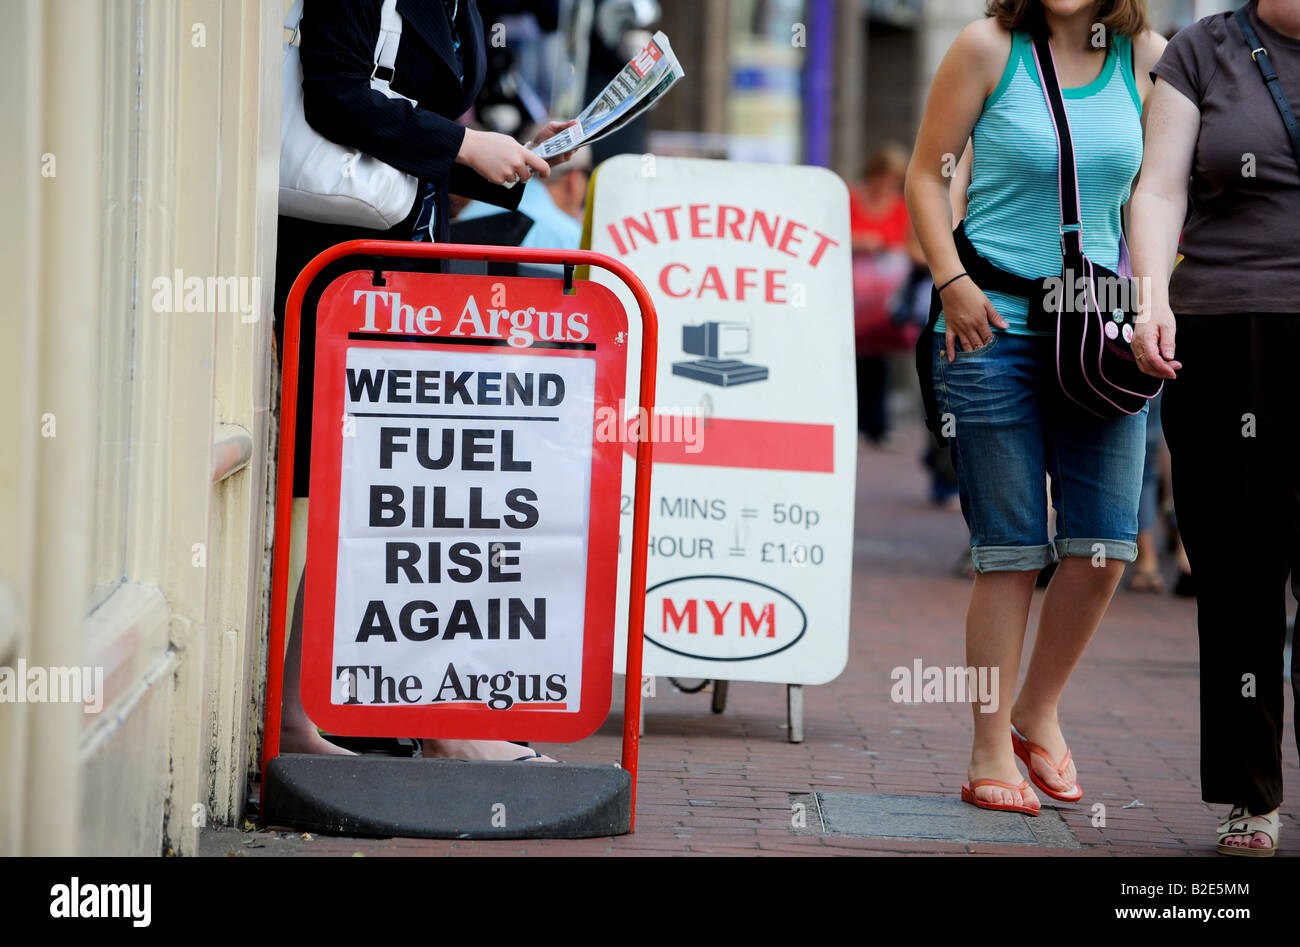 Credit crunch latest news: 'Fuel bills rise again' on a local paper pavement sign A-board. Picture by Jim - Stock Image